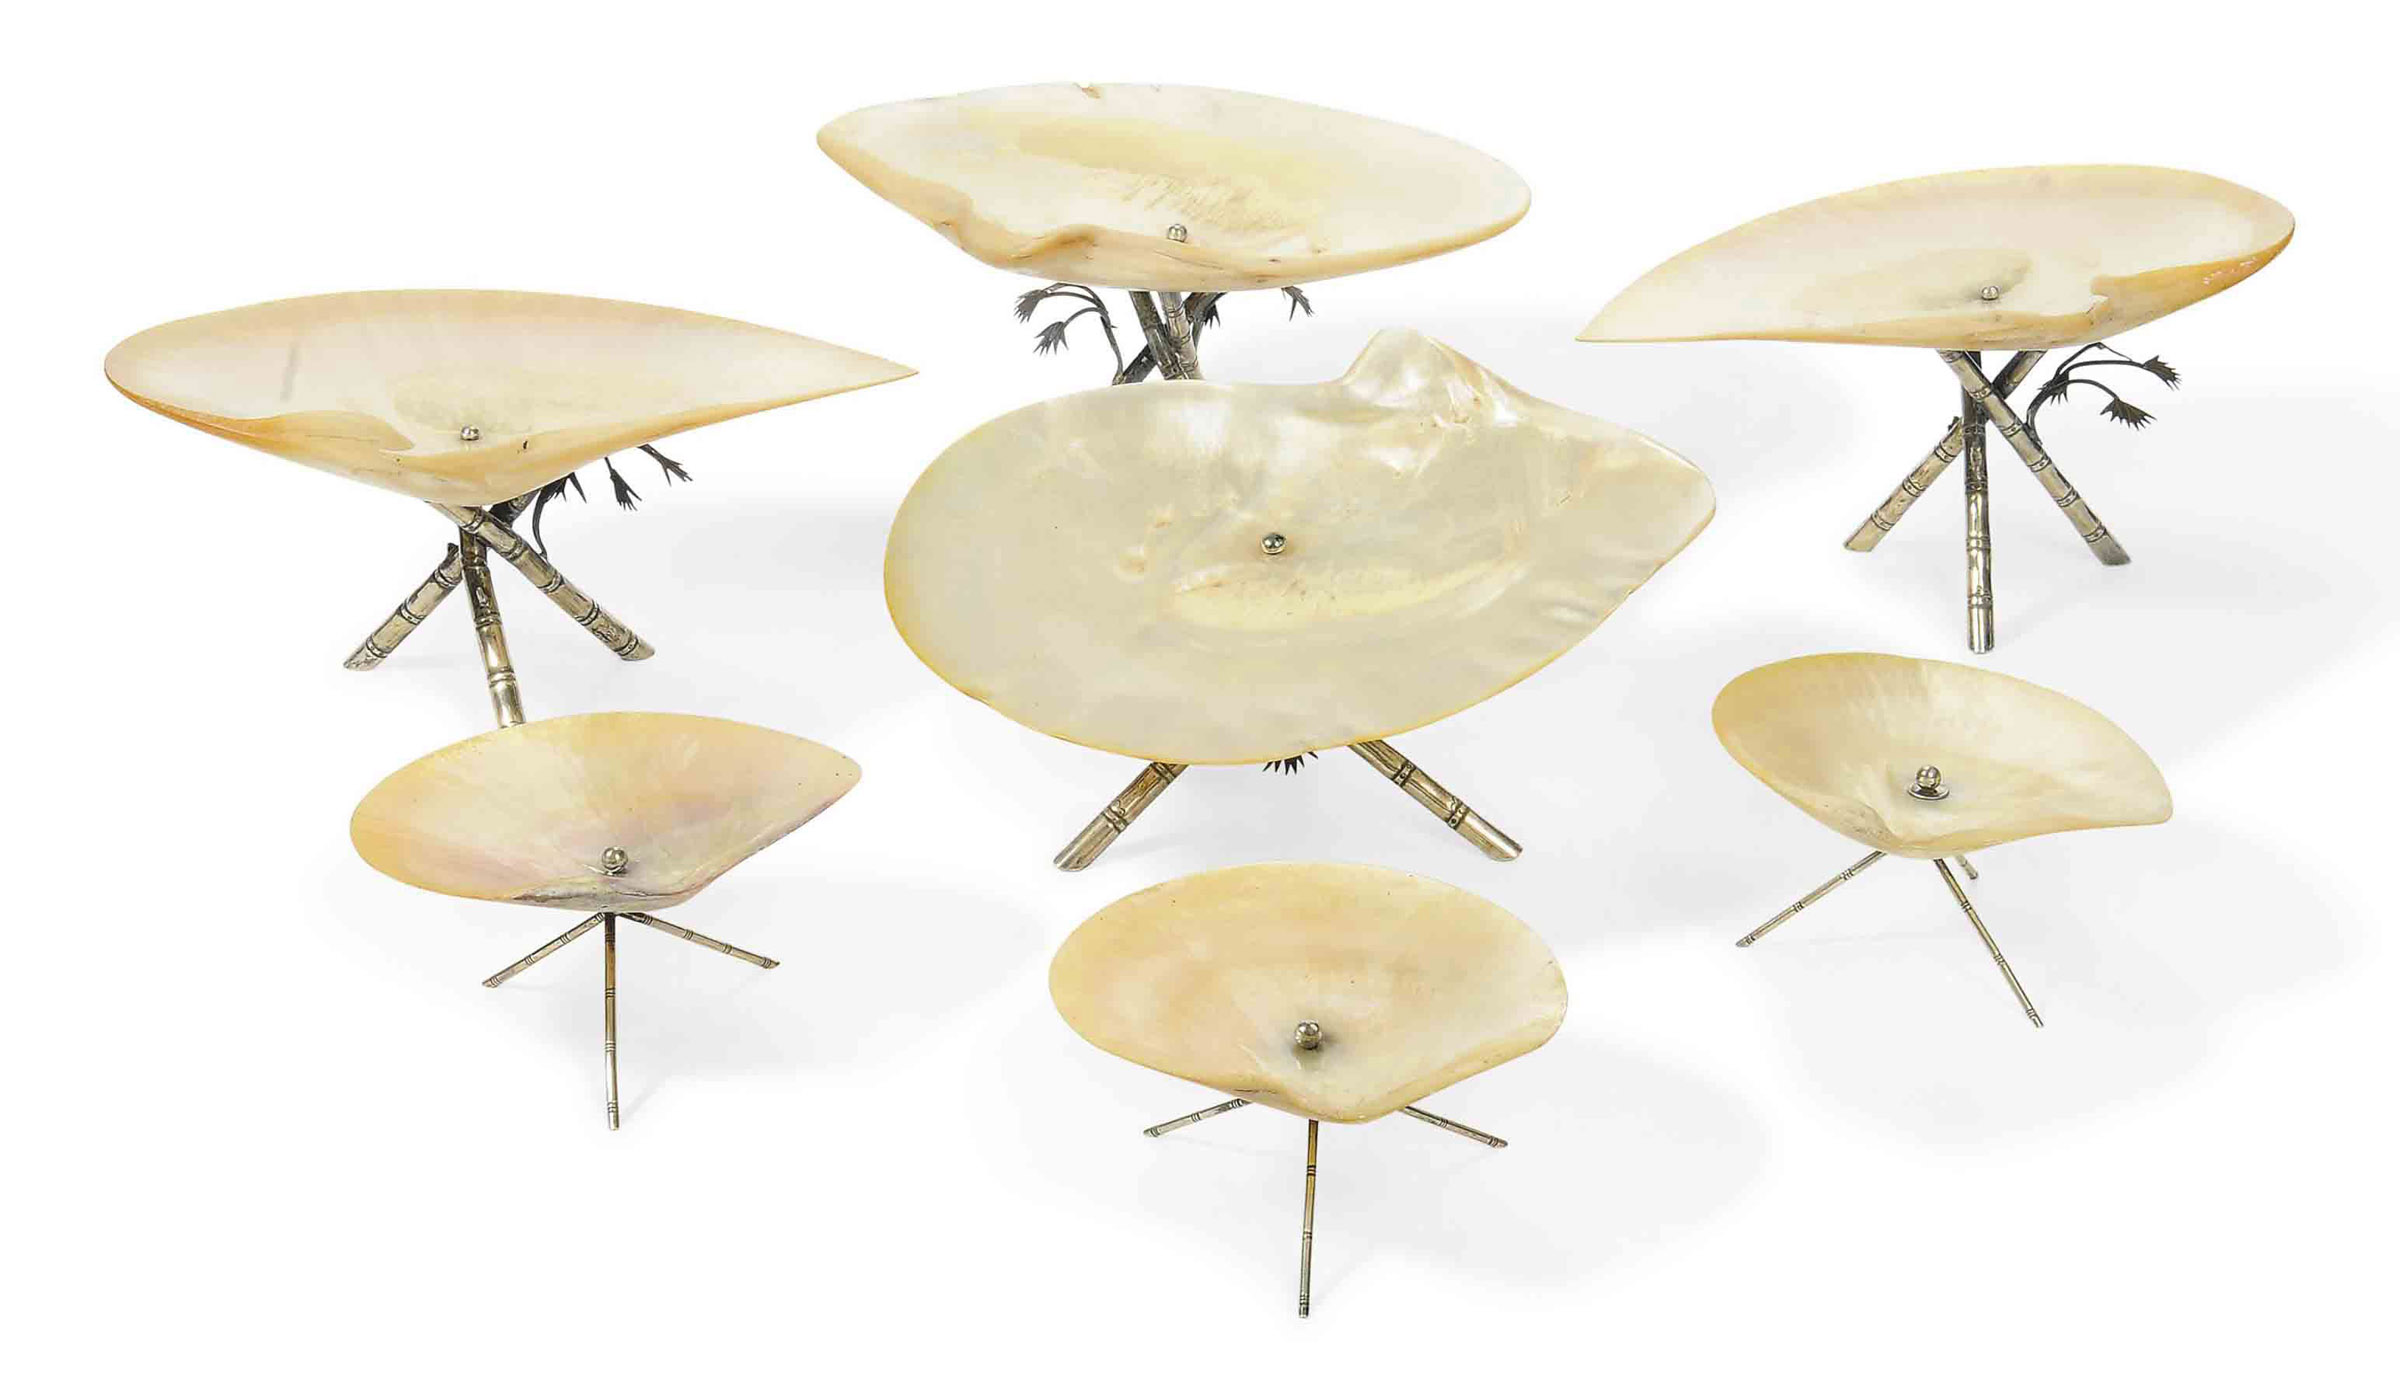 A GROUP OF SEVEN CHINESE EXPORT SILVER-MOUNTED MOTHER OF PEARL DISHES